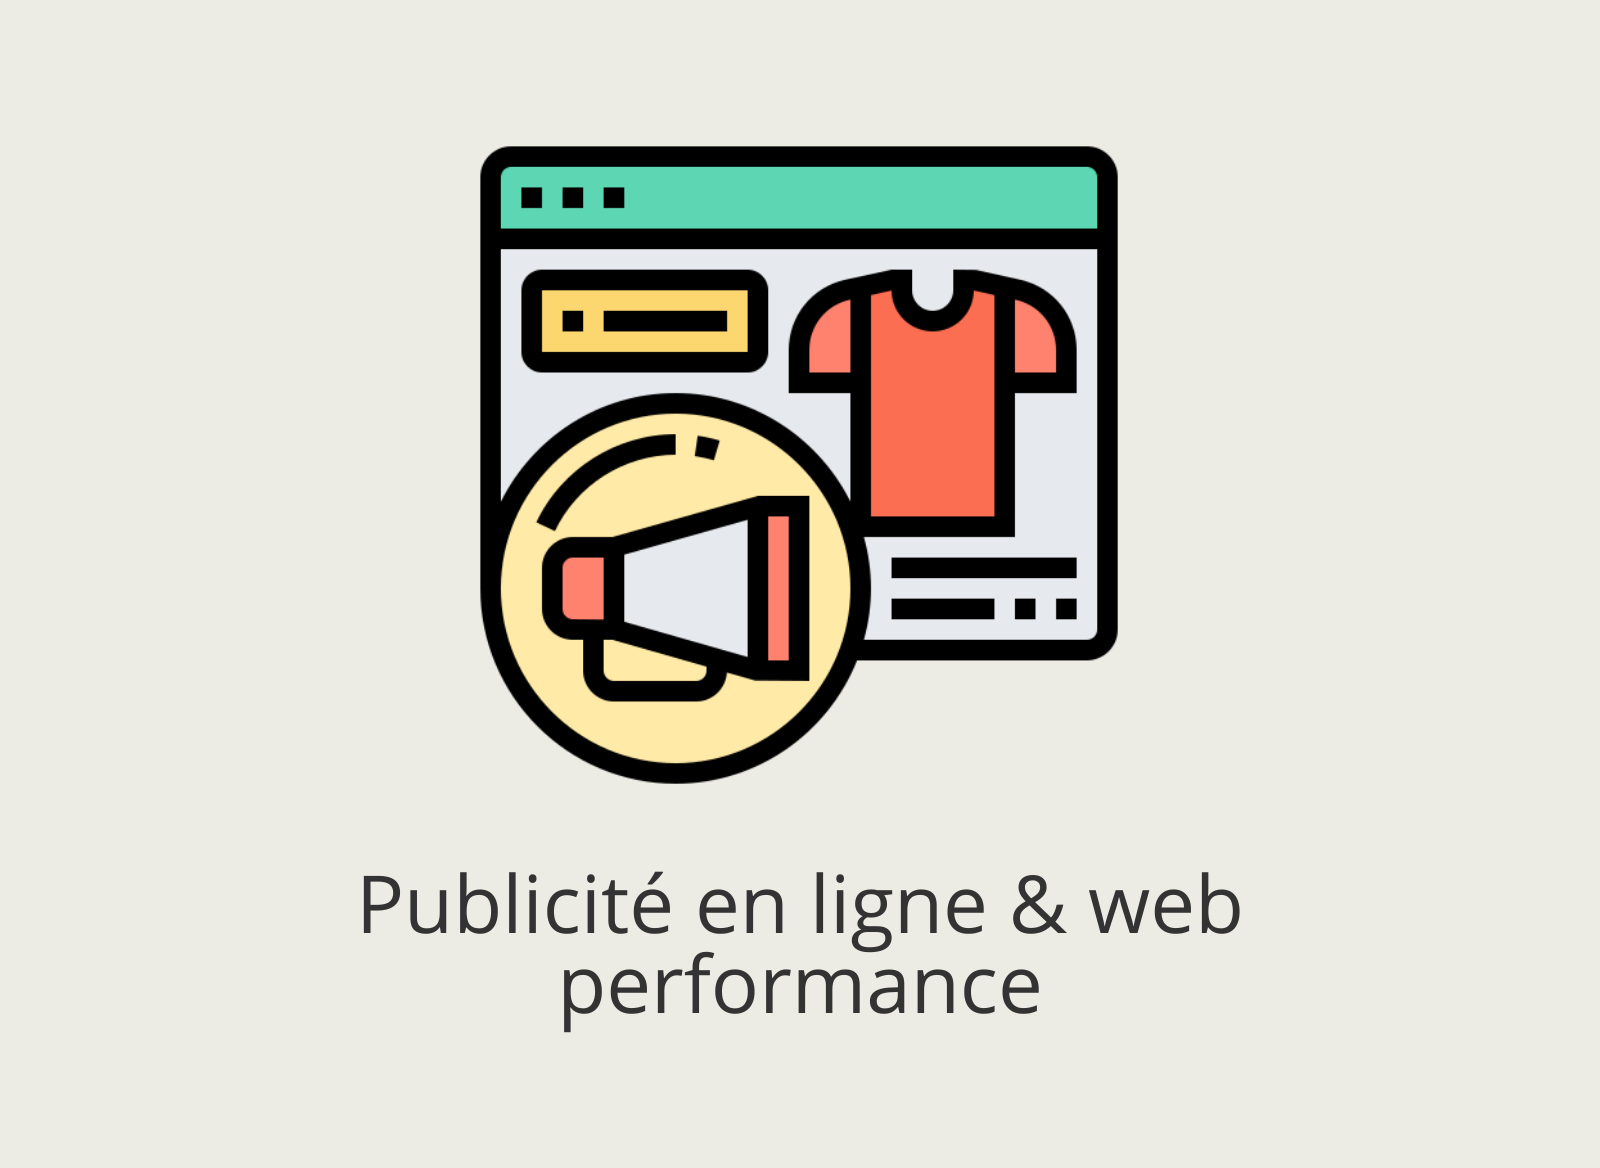 Publicité web performance